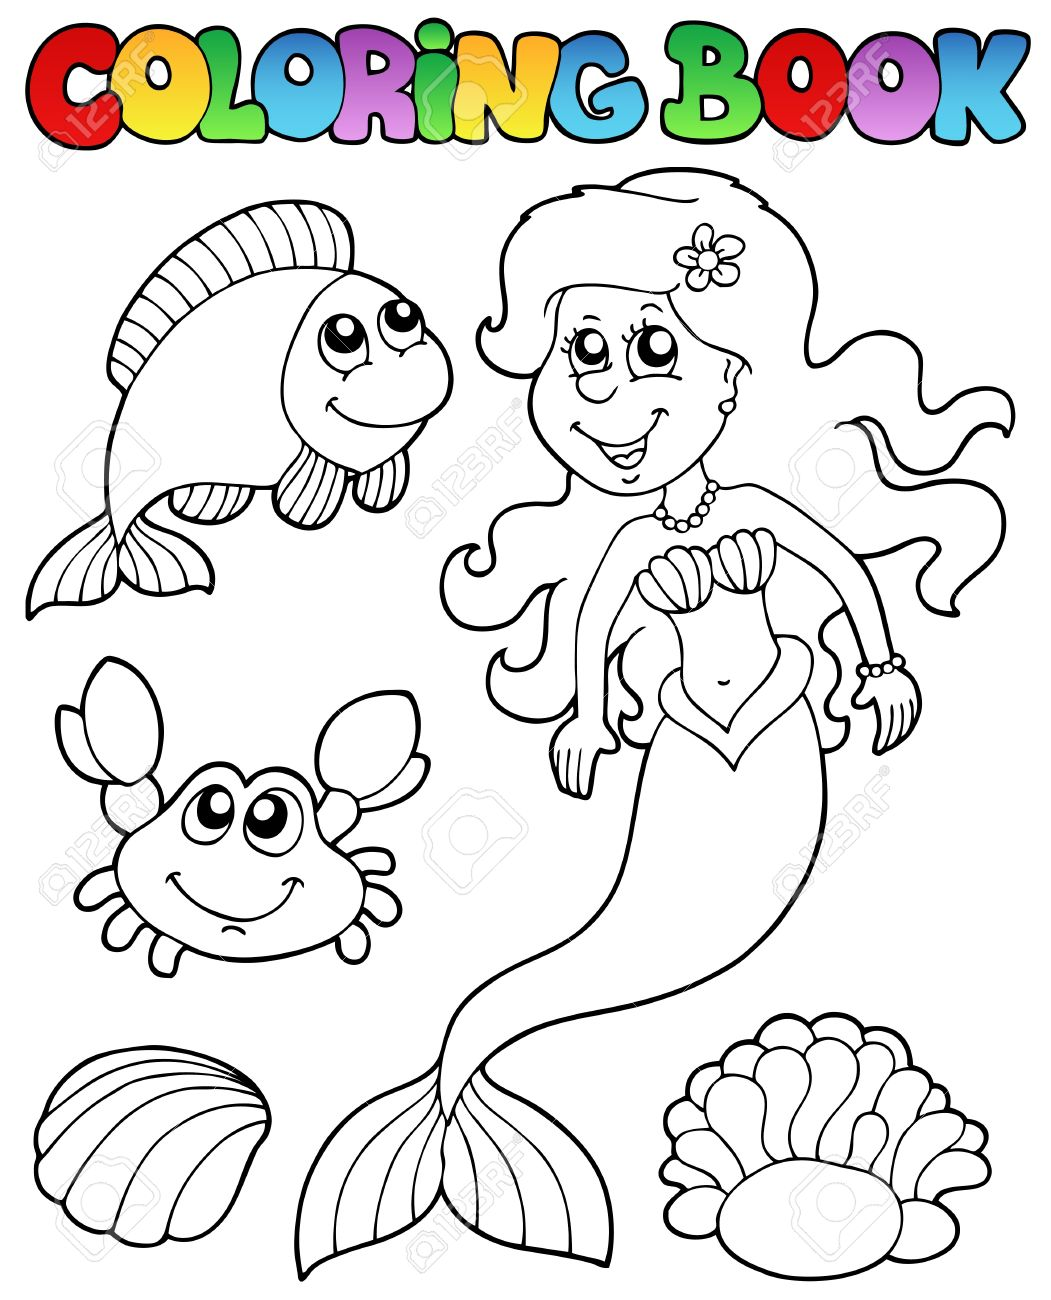 Coloring book with mermaid - vector illustration. Stock Vector - 9443074